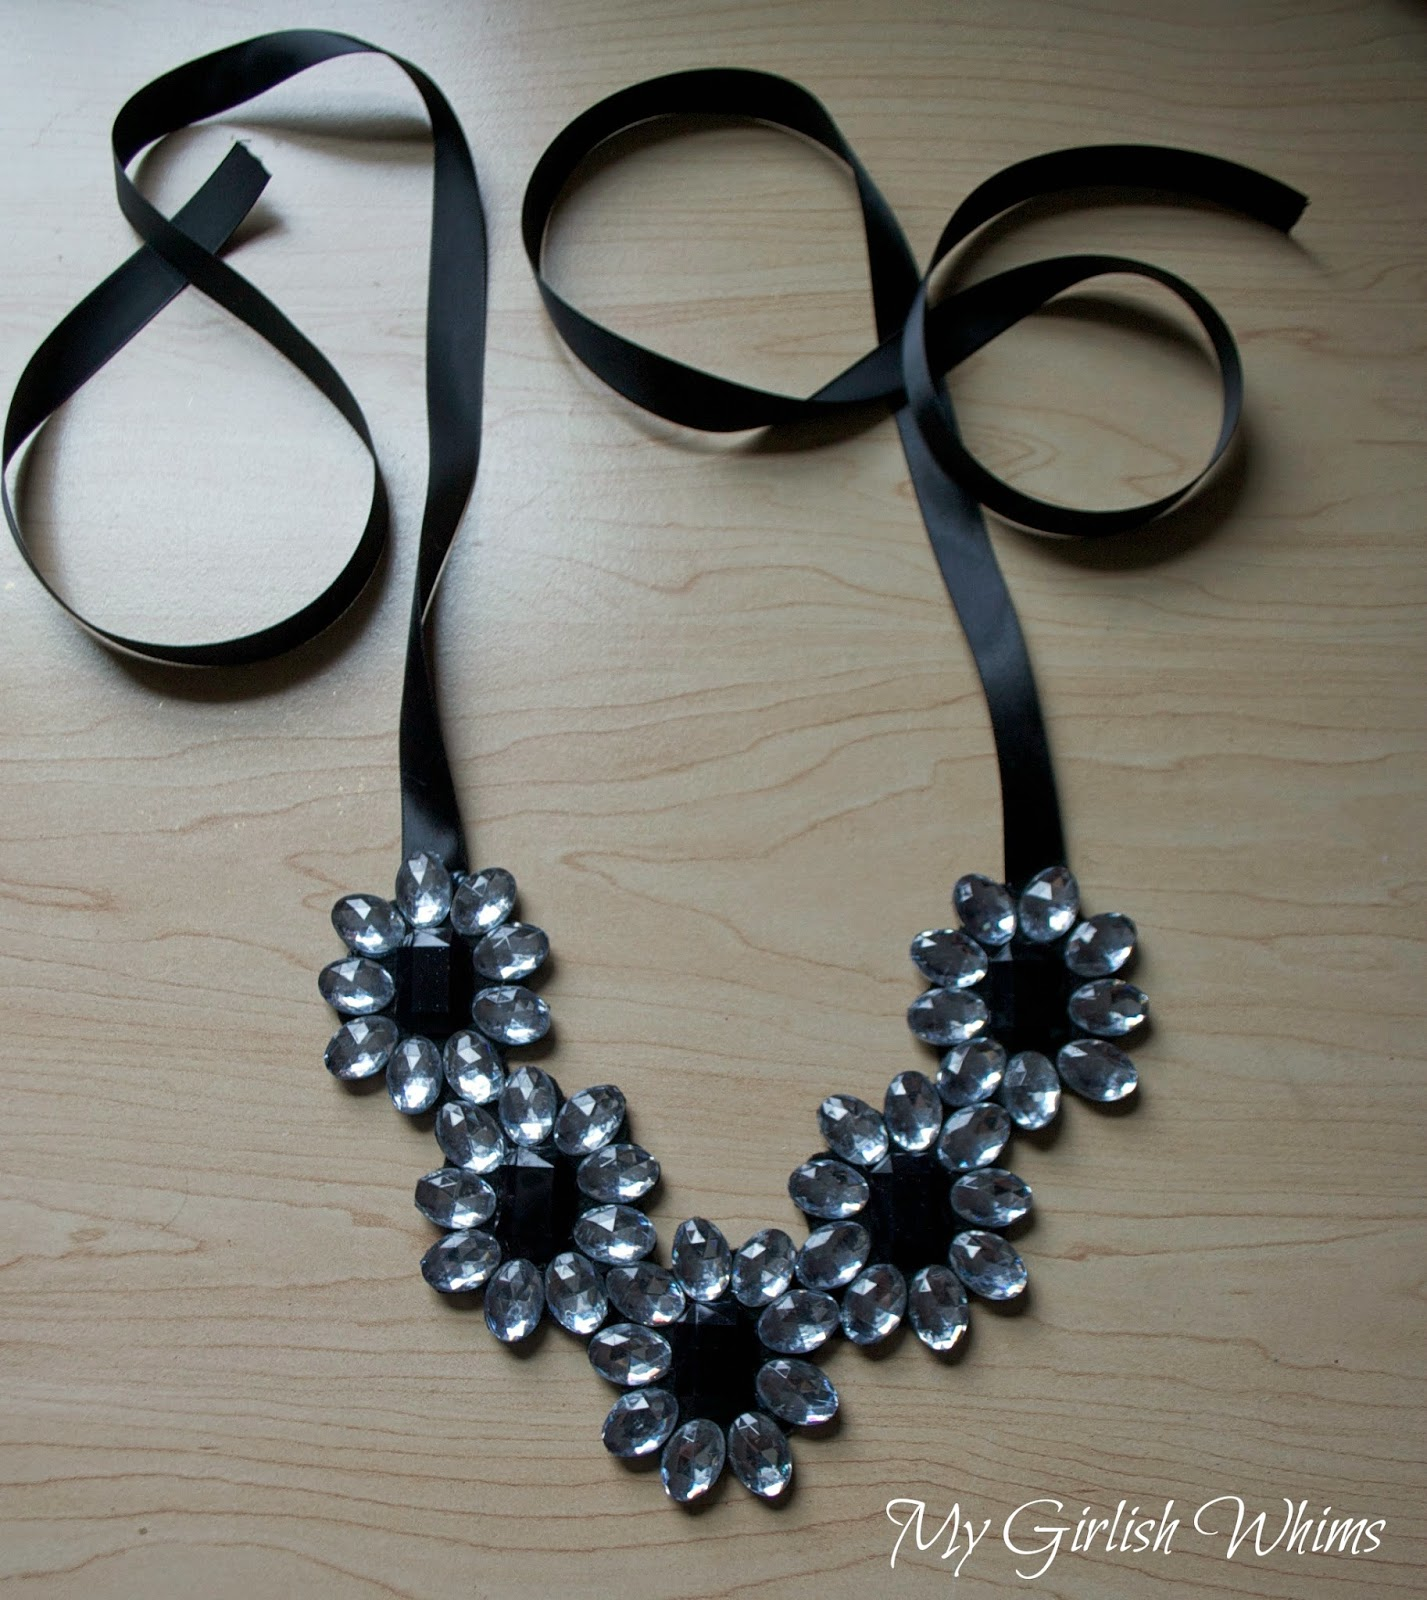 bead make necklace diy love chunky it find